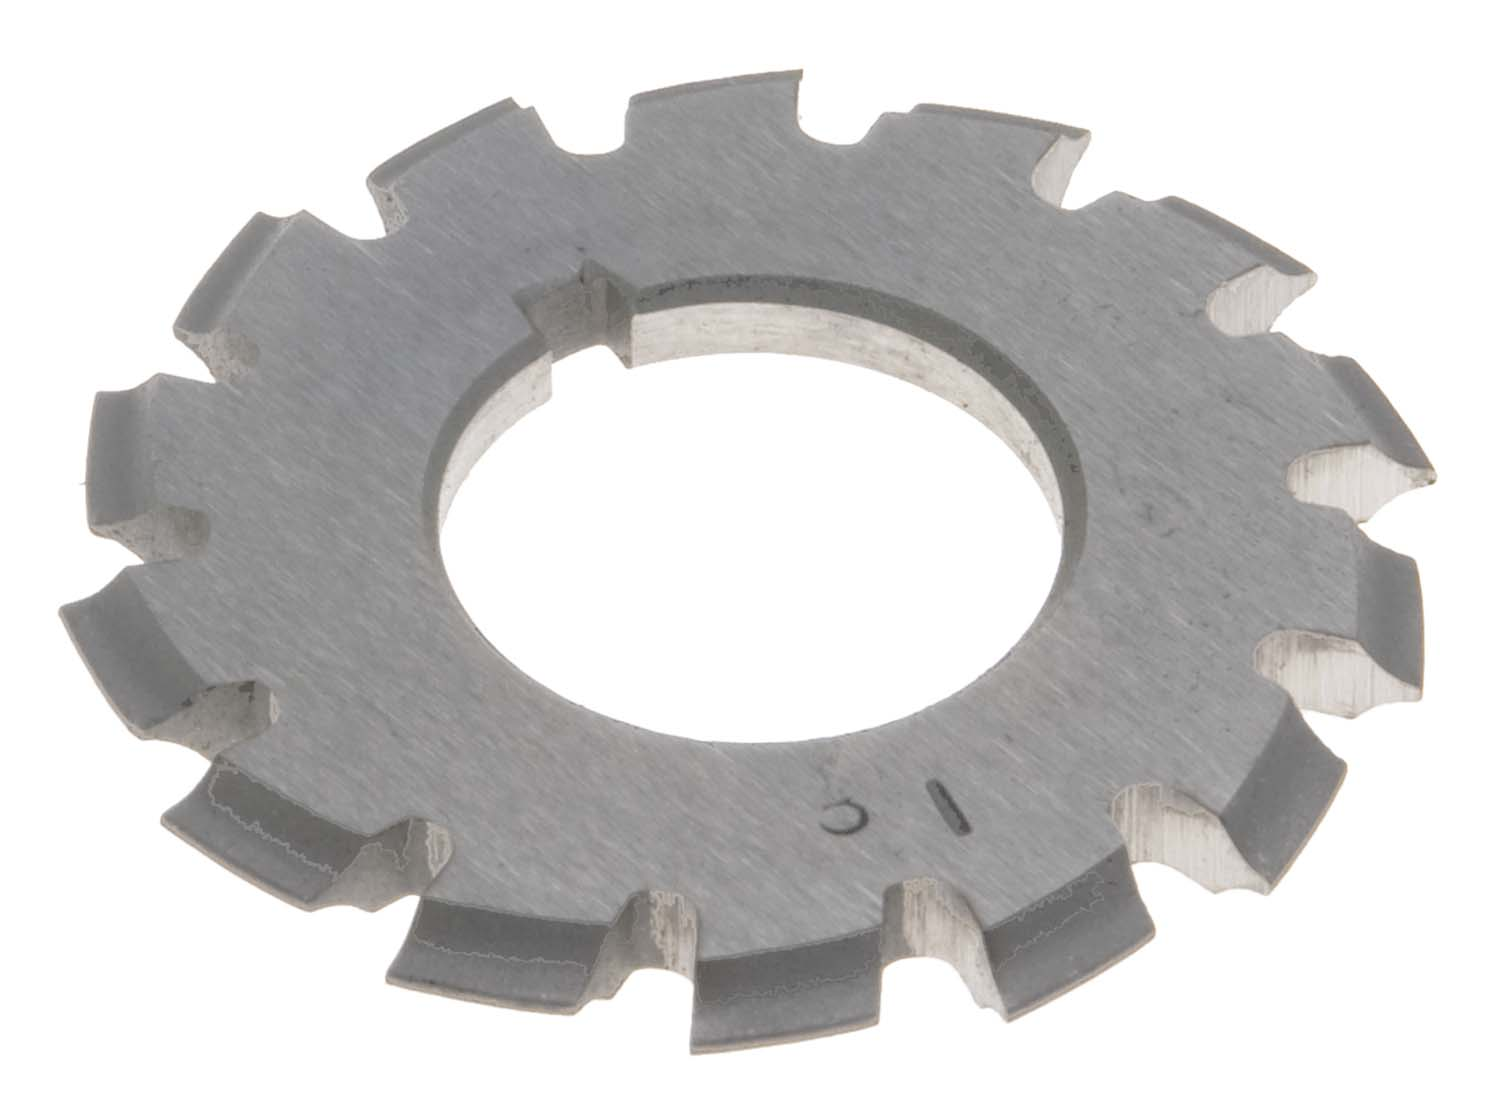 32 Diametral Pitch # 5   Involute Gear Cutter - 7/8 ID - 14-1/2 Degree Pressure Angle